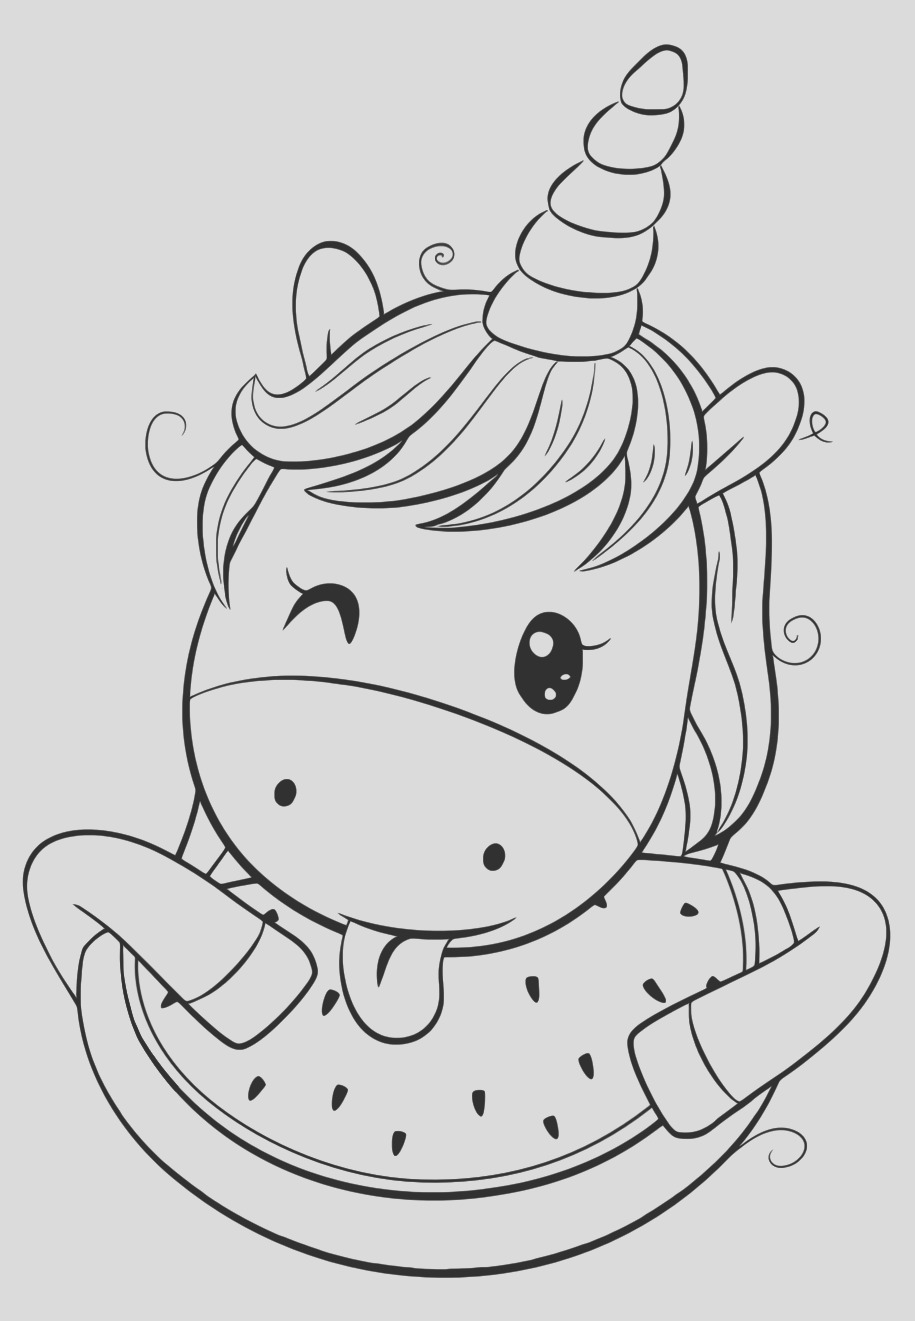 865 cute unicorn coloring pages